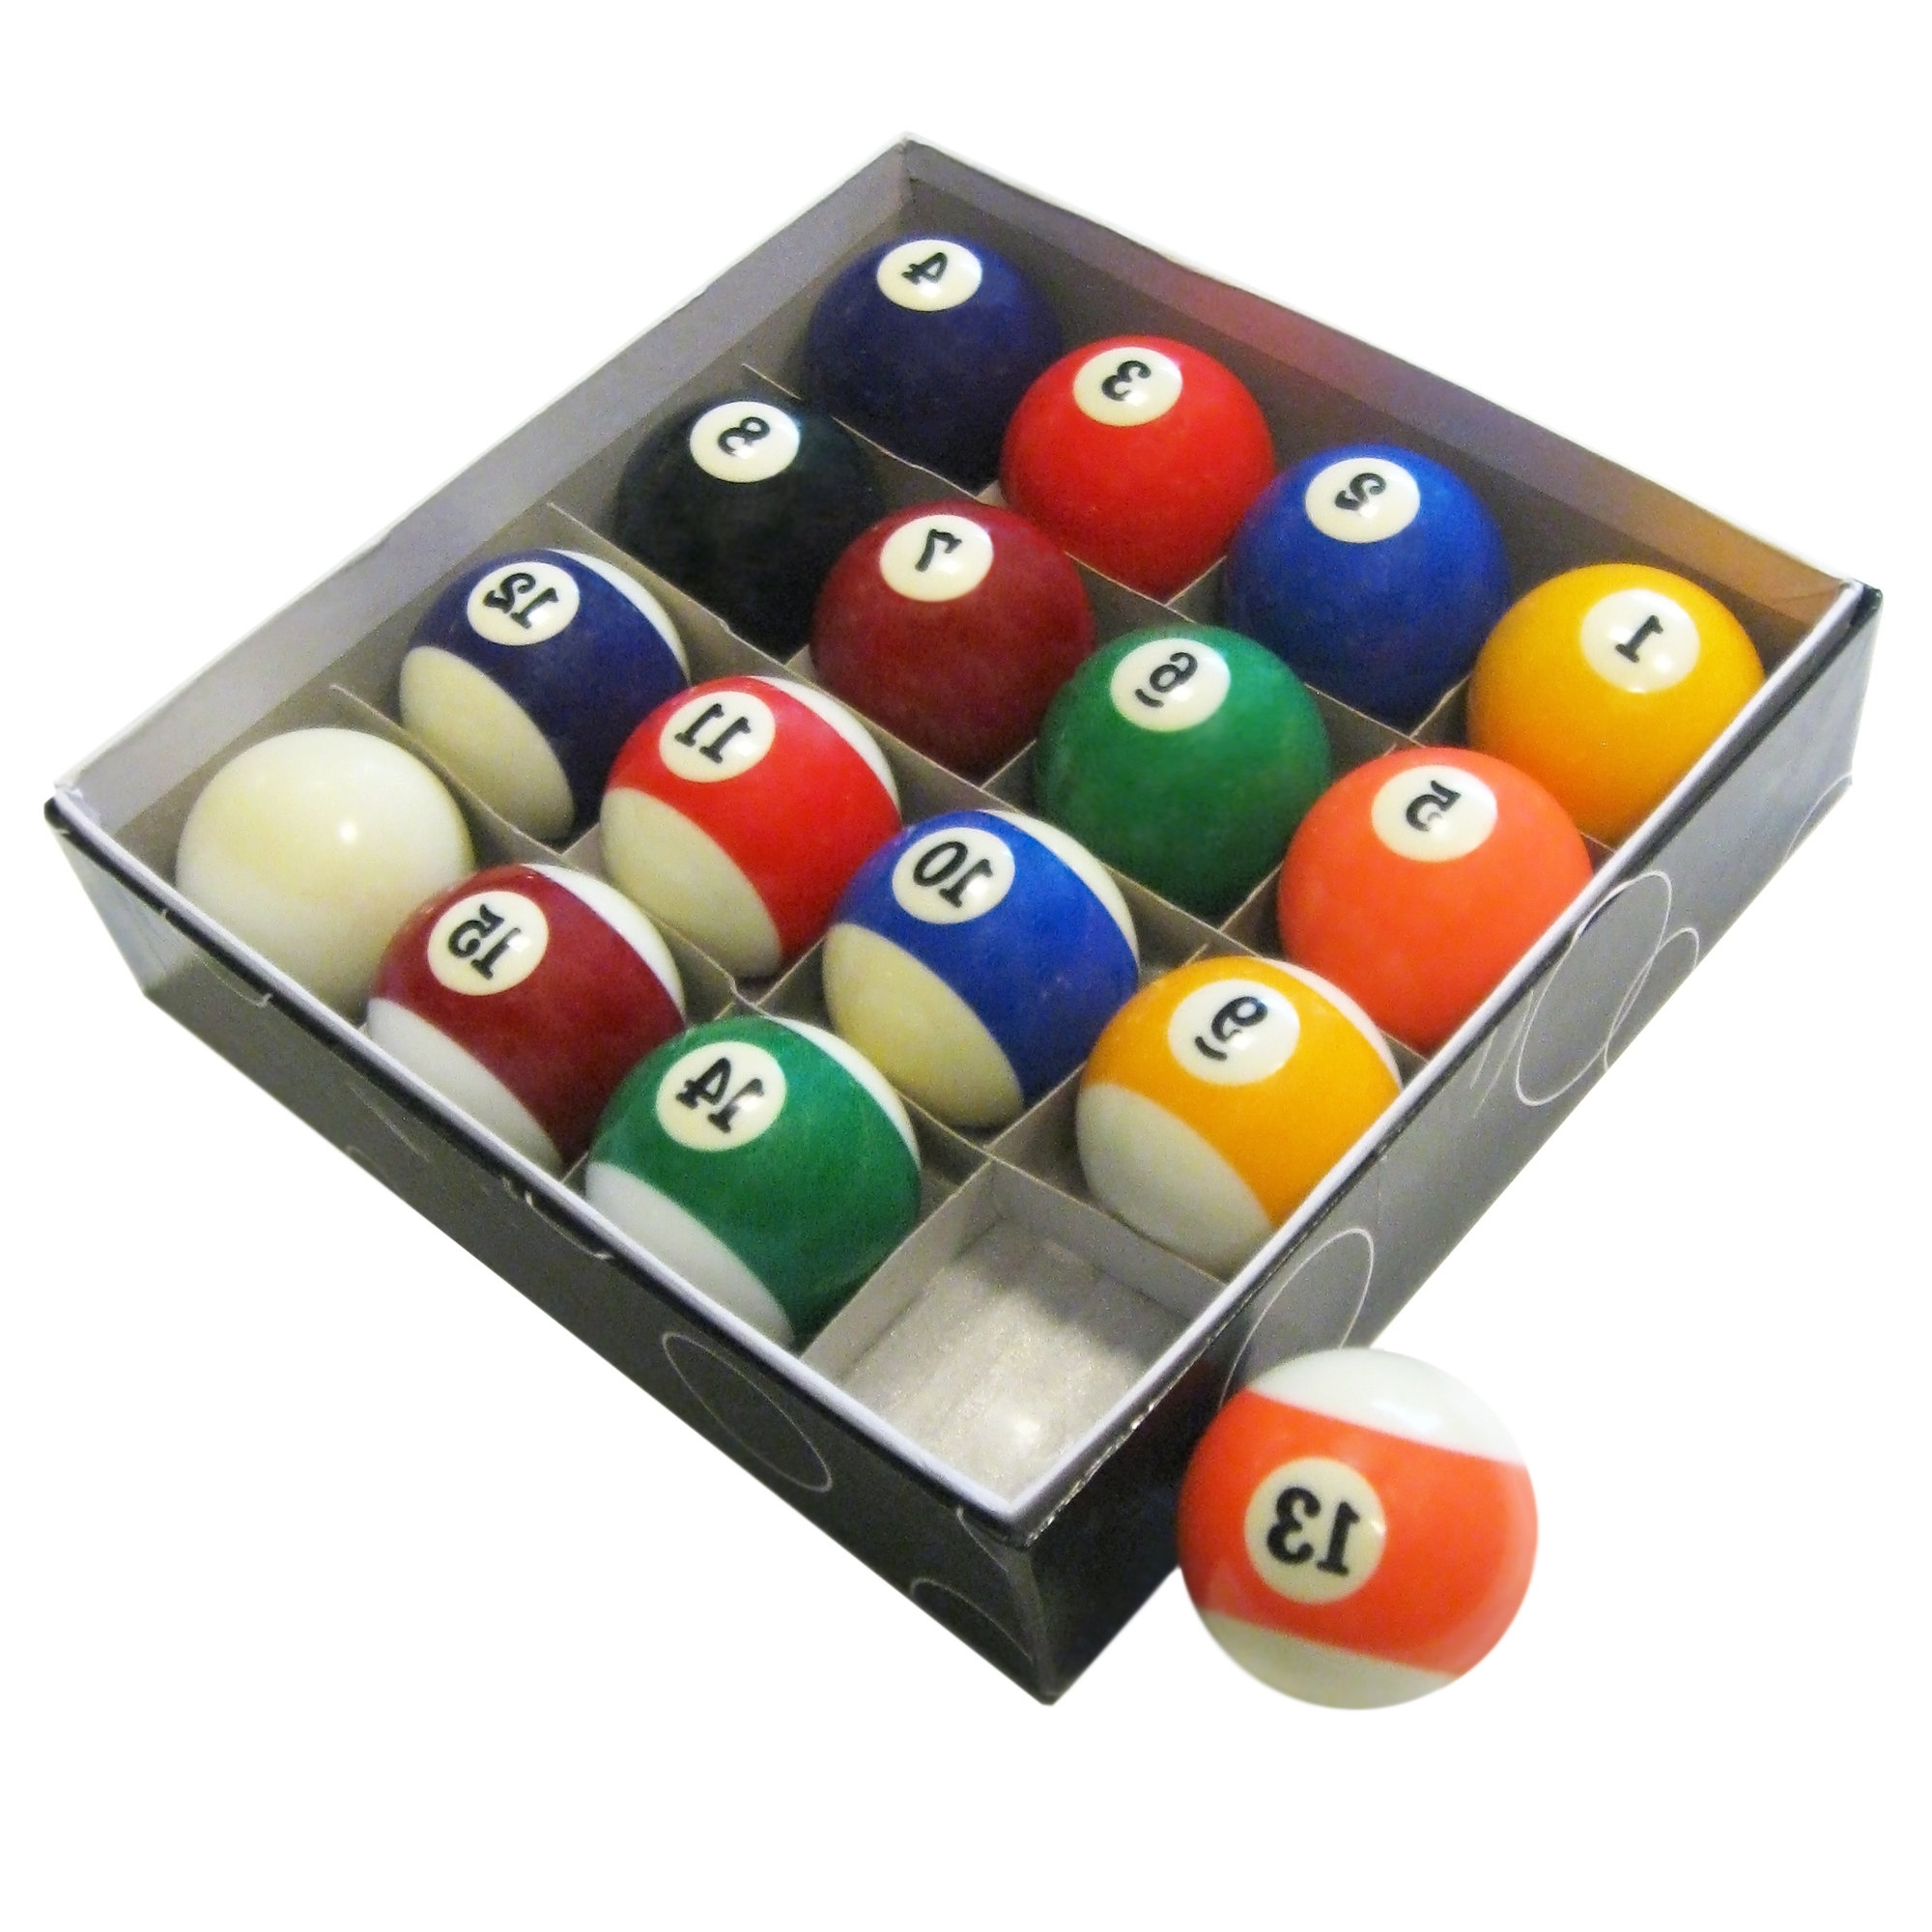 Billiard Wall Art Intended For Current Hathaway Games Pool Table Regulation Billiard Ball Set & Reviews (View 3 of 15)